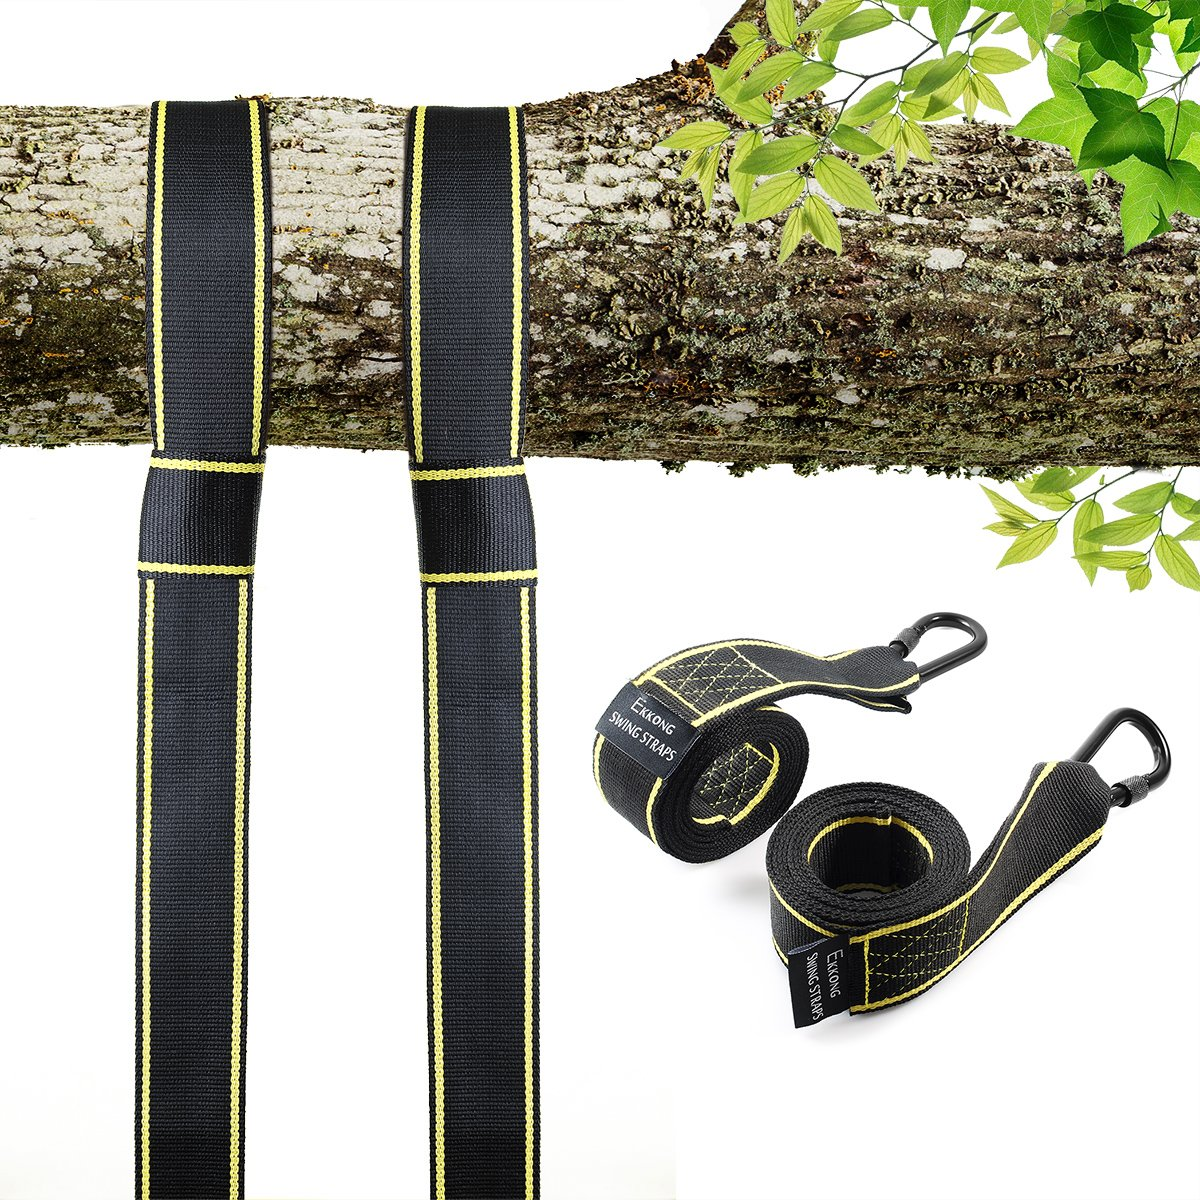 Tree Swing Straps Hanging Kit Holds 2800lbs, Fast & Easy Way to Hang Any Swing, 2 Tree Straps(5 FT) and 2 Safety Lock Carabiner Hooks, Perfect For Swings and Hammocks - 100% Waterproof (type 1)